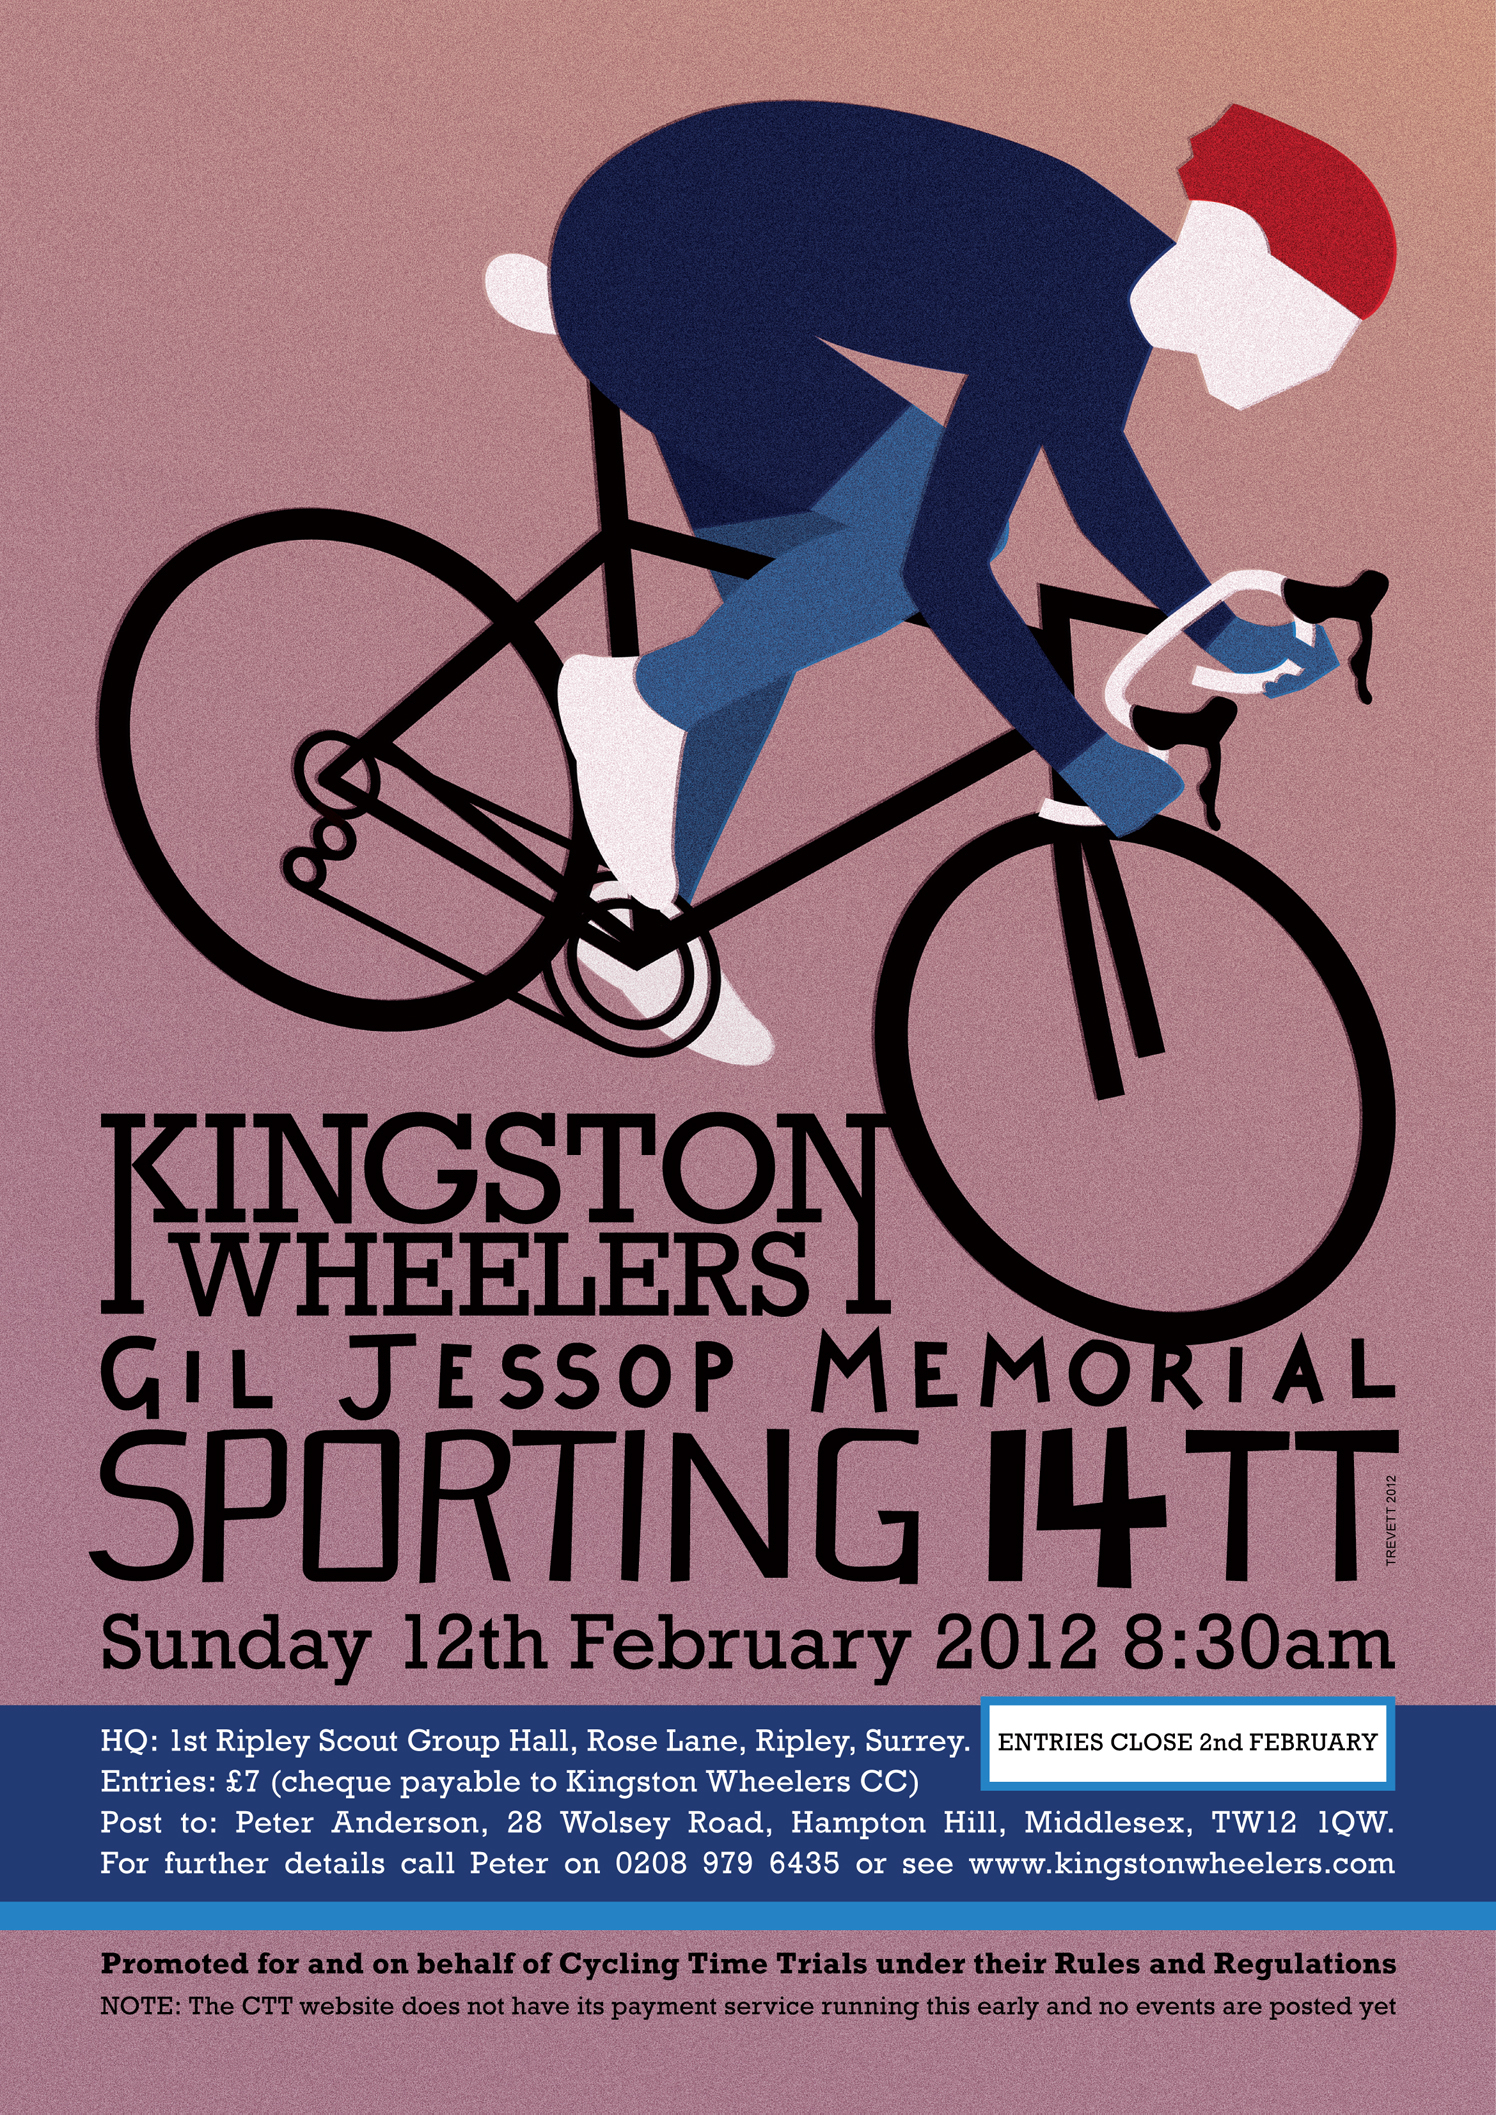 Kingston Wheelers Cycling Poster